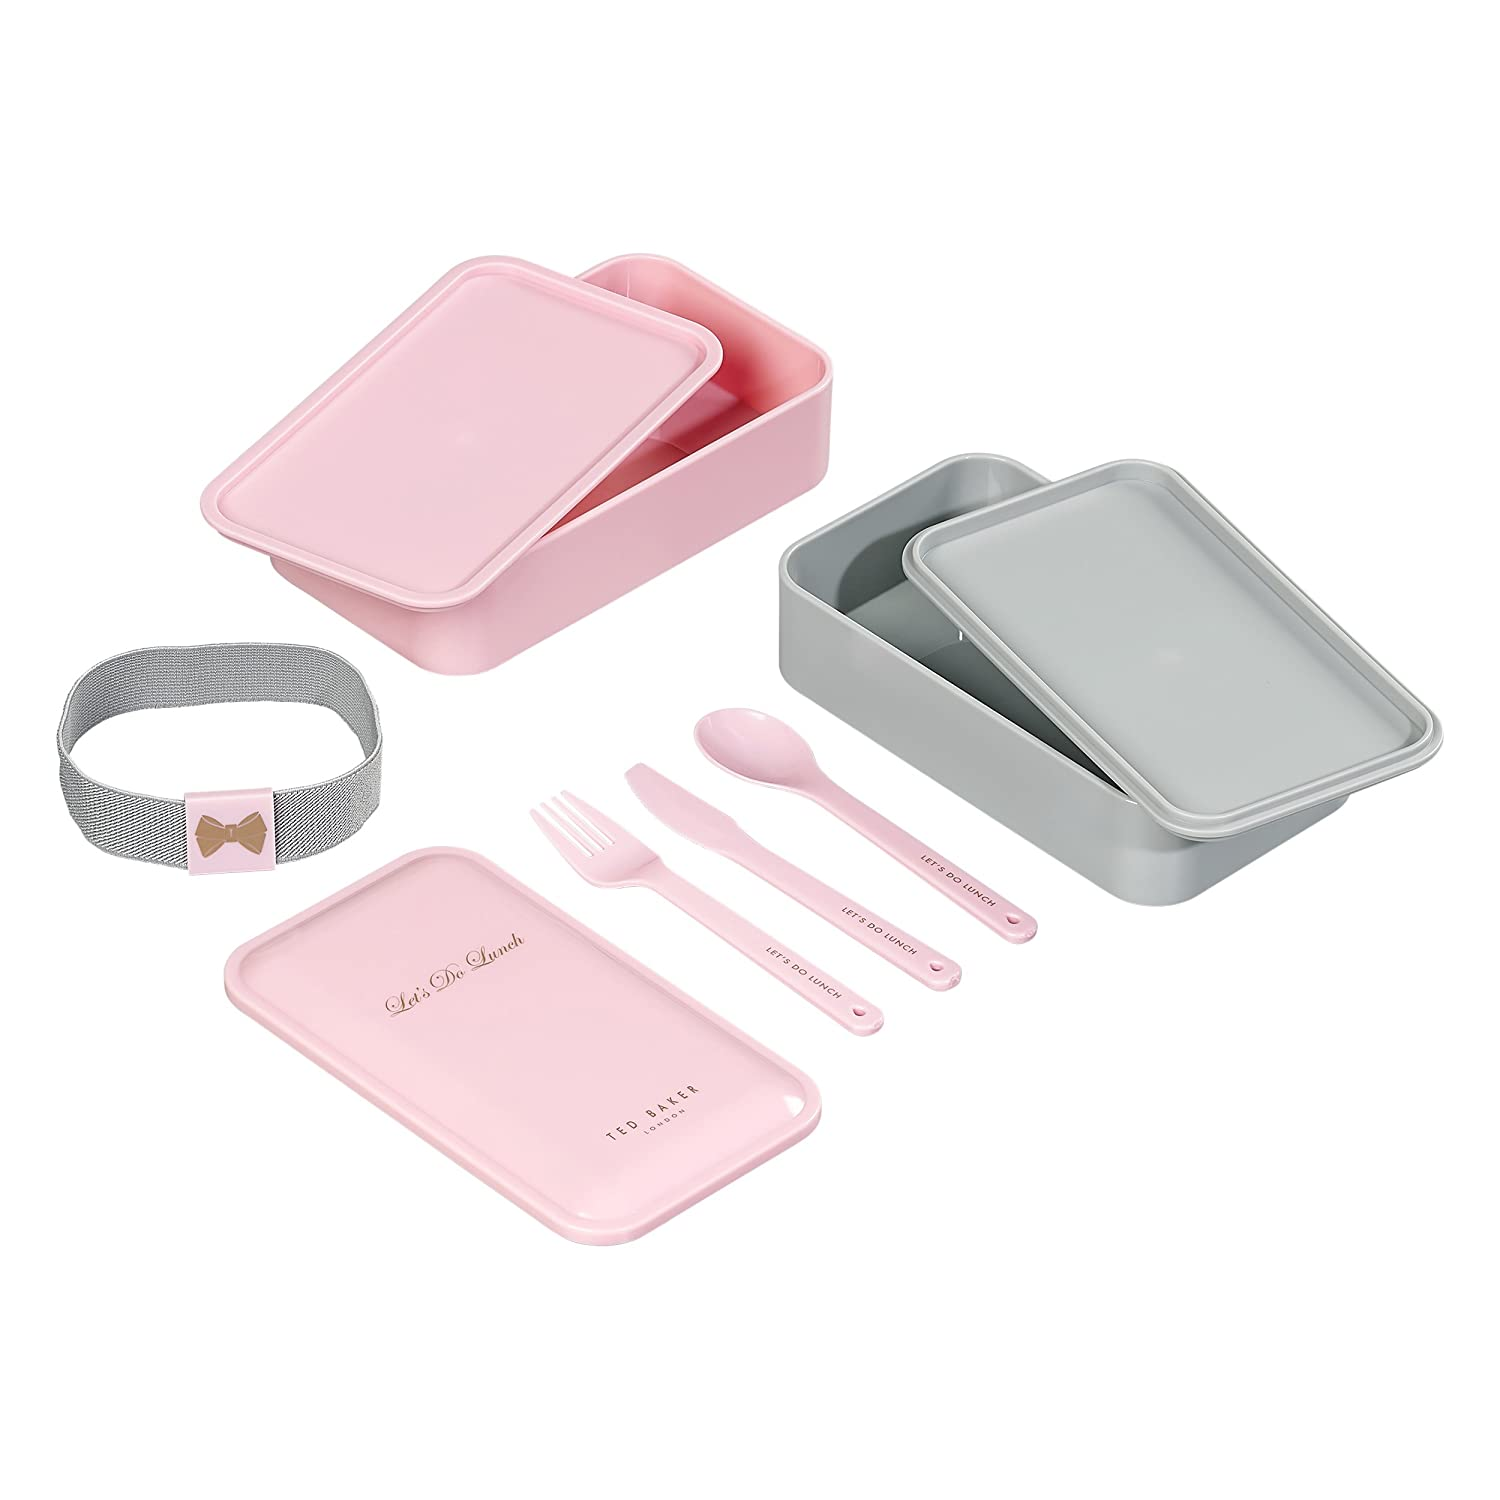 acdcf14a99127b Amazon.com  Ted Baker 6-Piece Lunch Stack Storage Containers with Cutlery  and Closure Strap  Kitchen   Dining